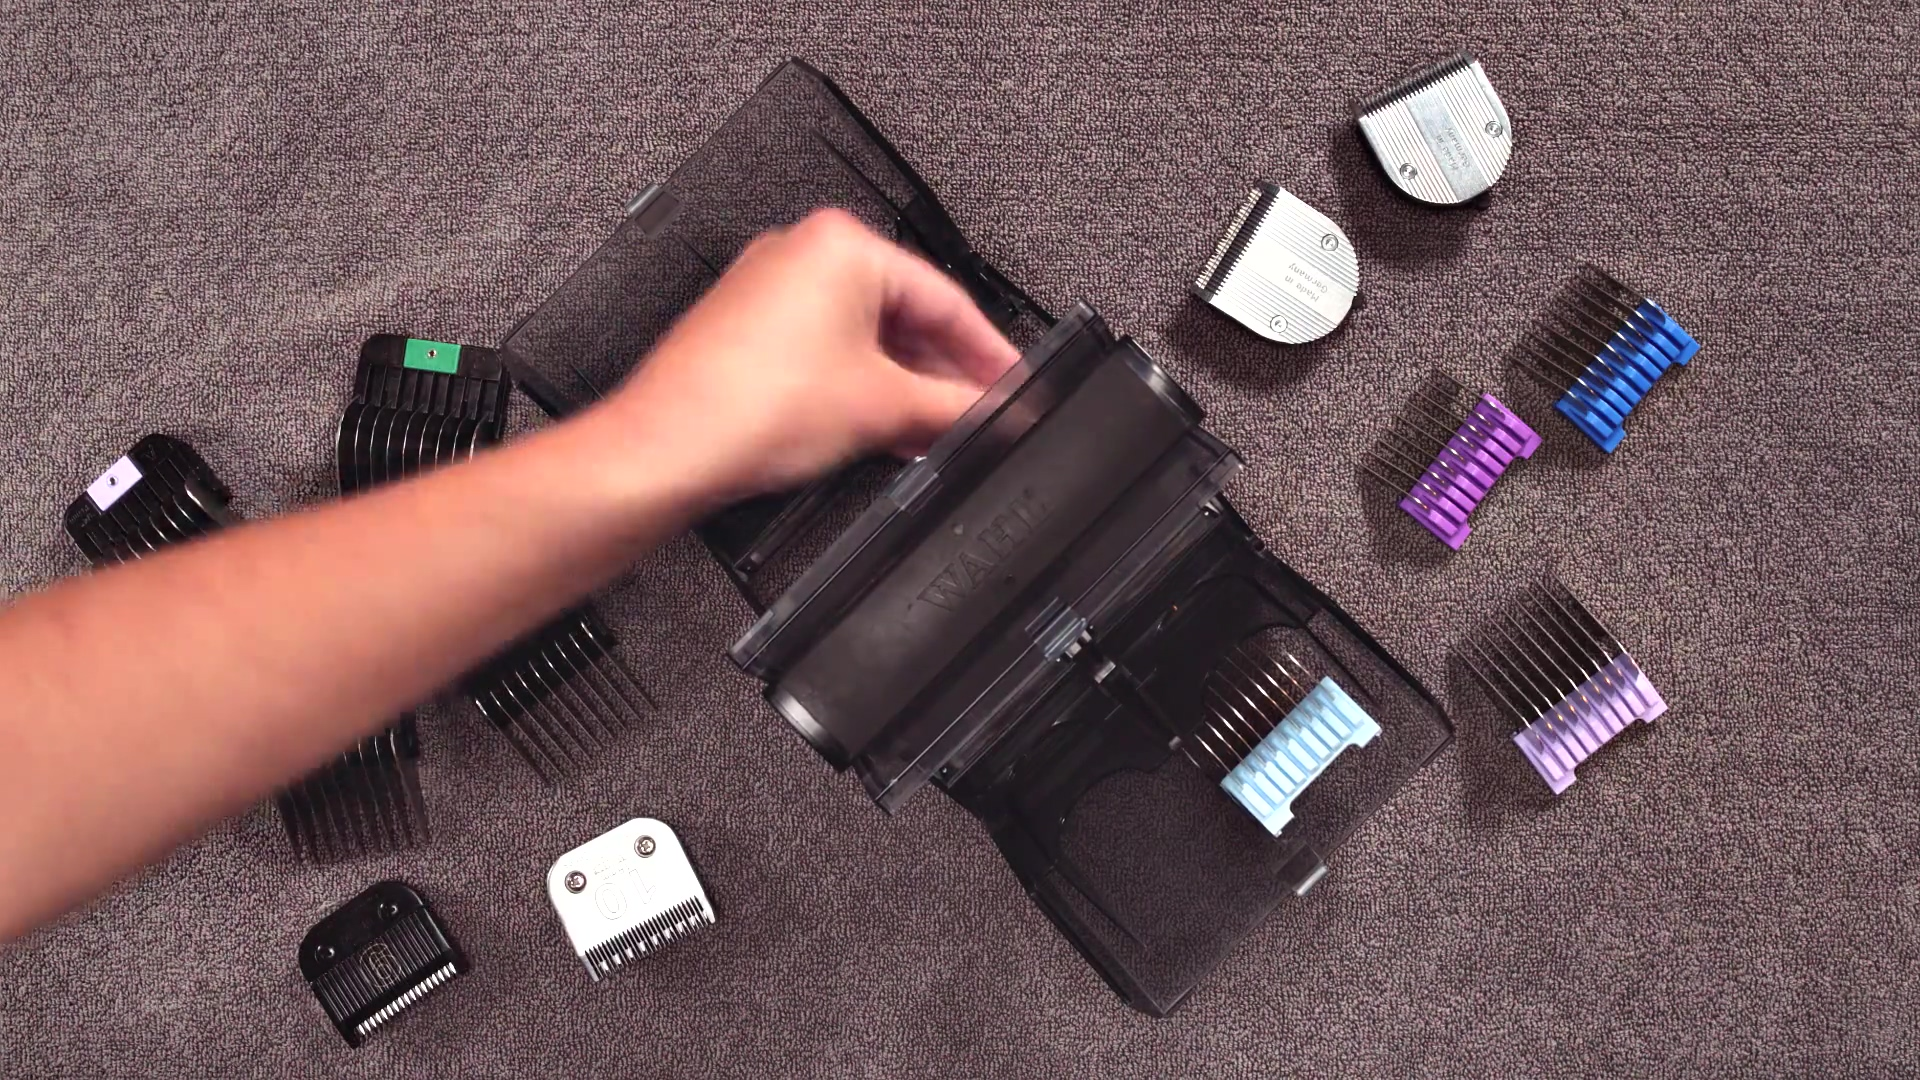 WAHL How to Use the Wahl Total Solutions Organizer